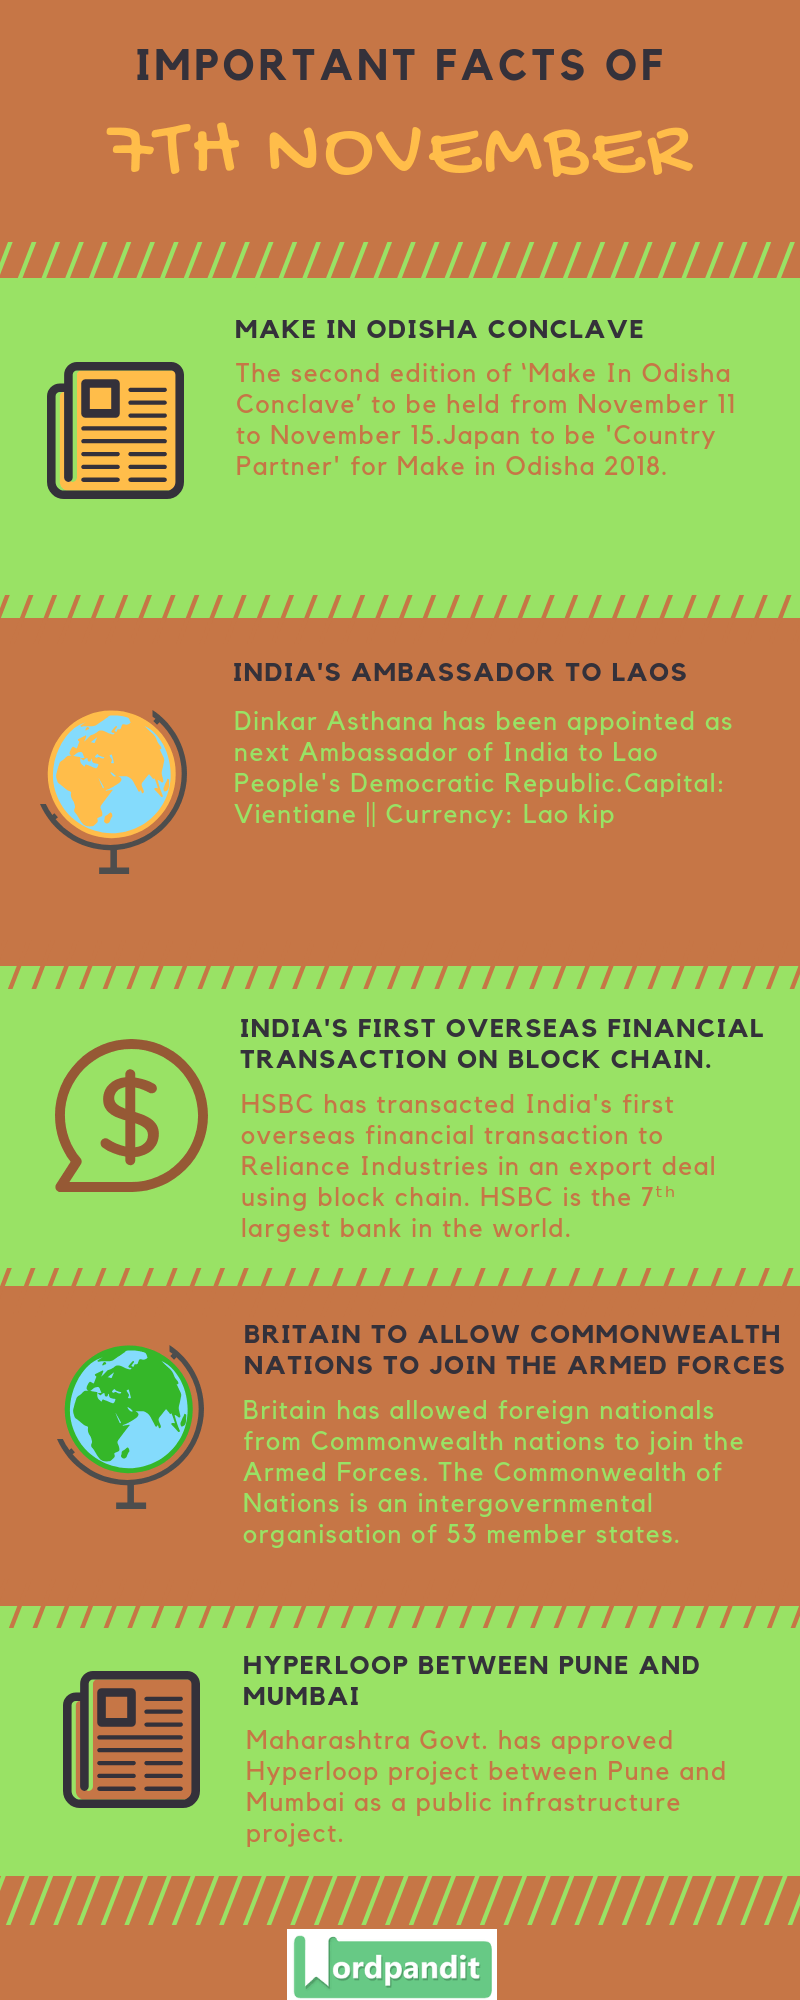 Daily Current Affairs 7 November 2018 Current Affairs Quiz 7 November 2018 Current Affairs Infographic